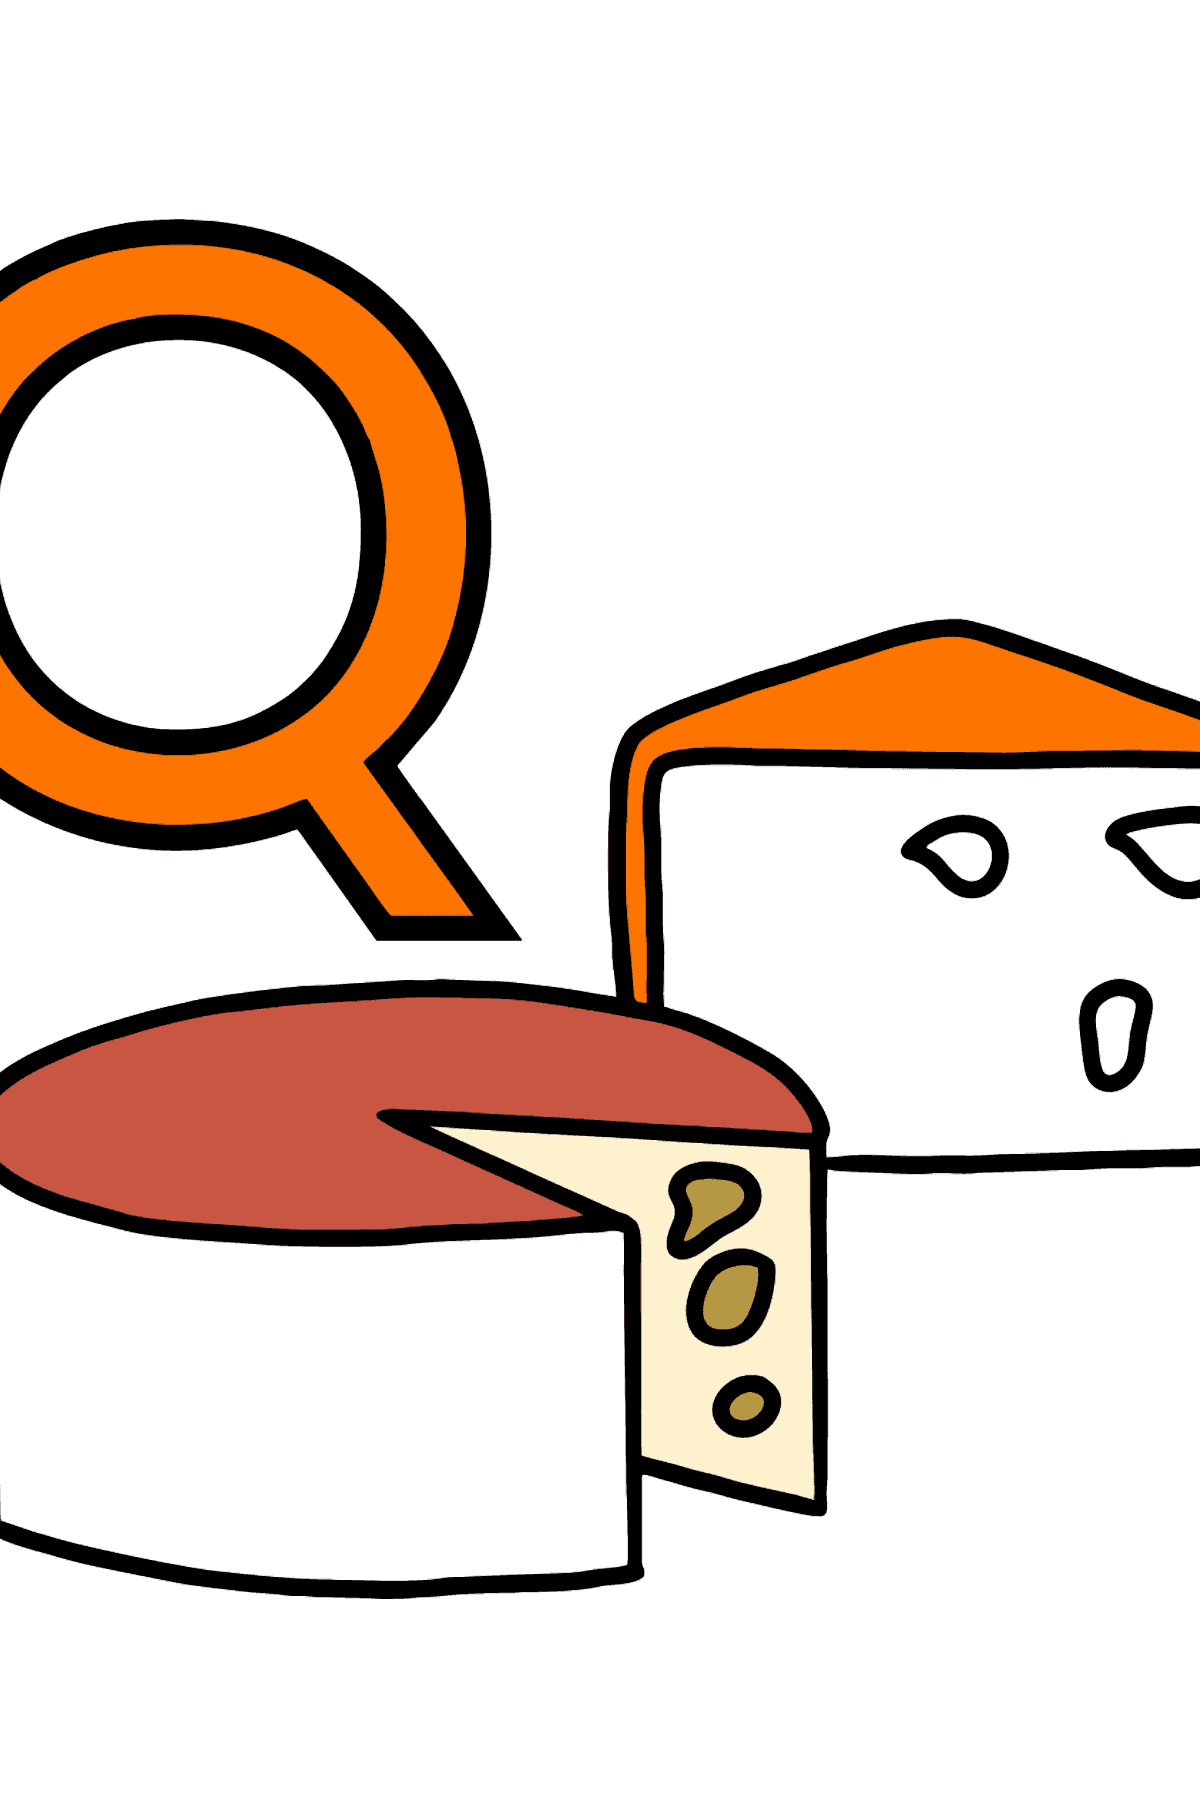 Spanish Letter Q coloring pages - QUESO - Coloring Pages for Kids